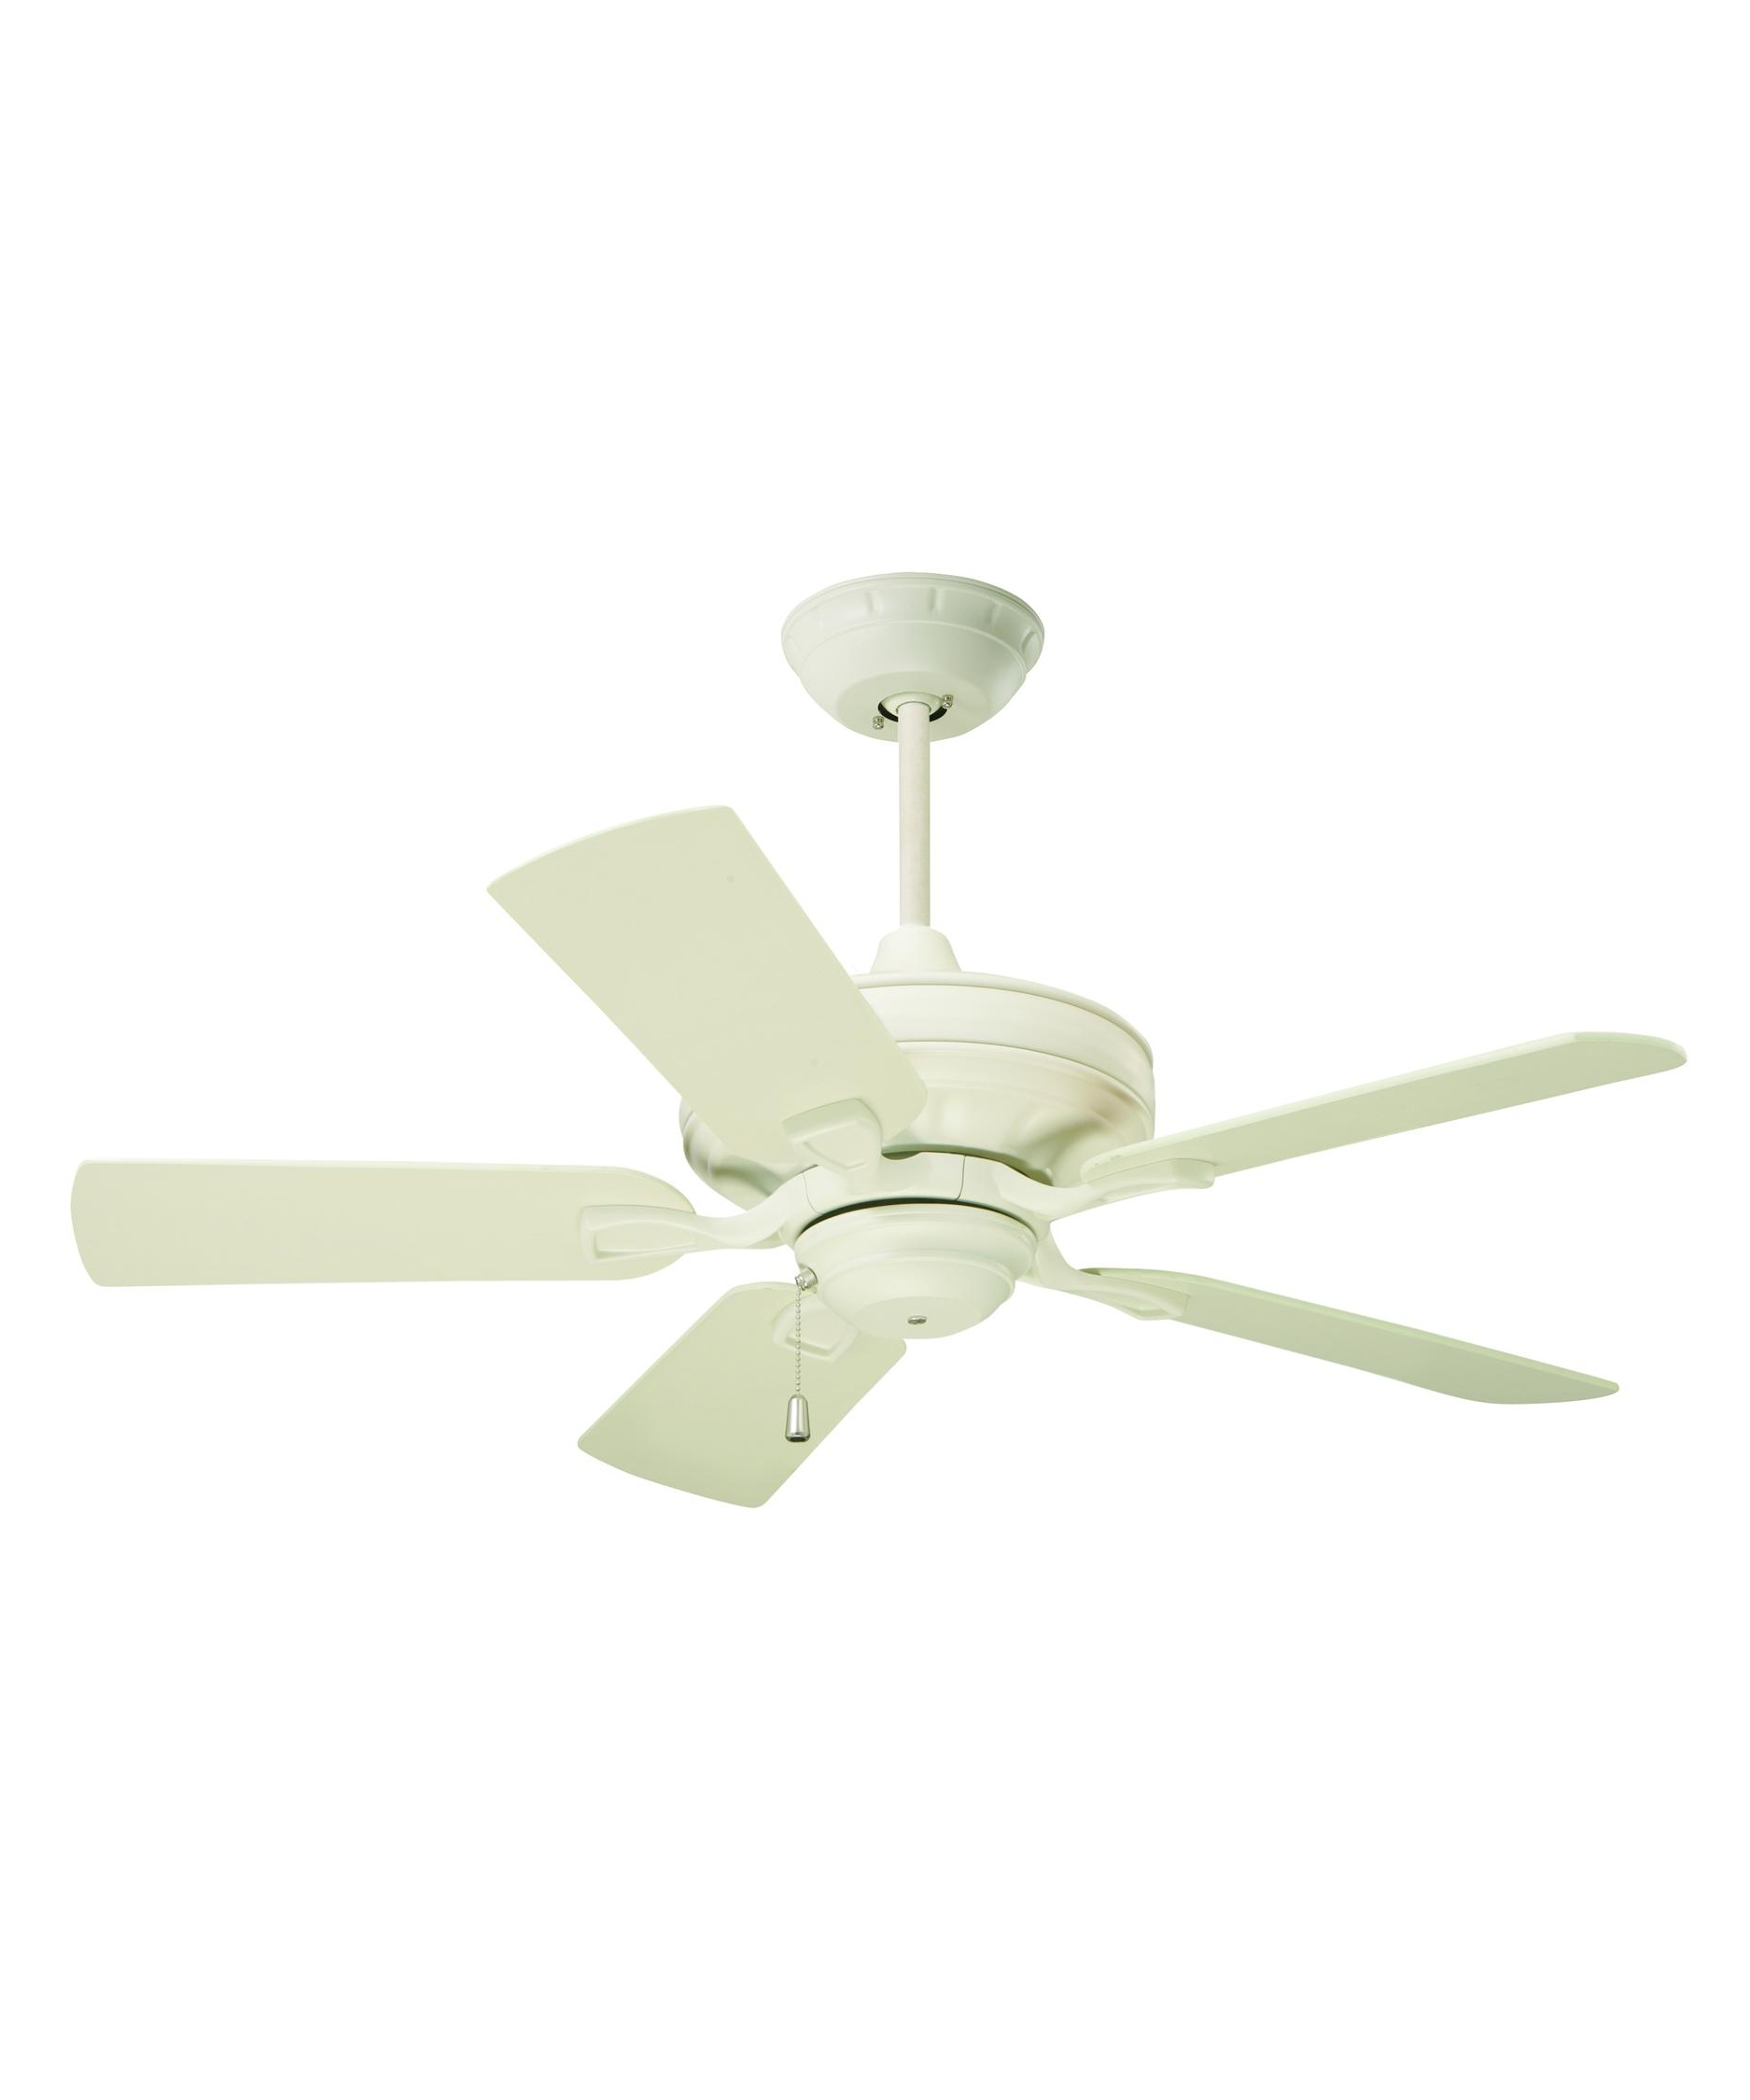 Emerson Cf442 Carrera Bella 42 Inch 5 Blade Ceiling Fan (View 4 of 20)